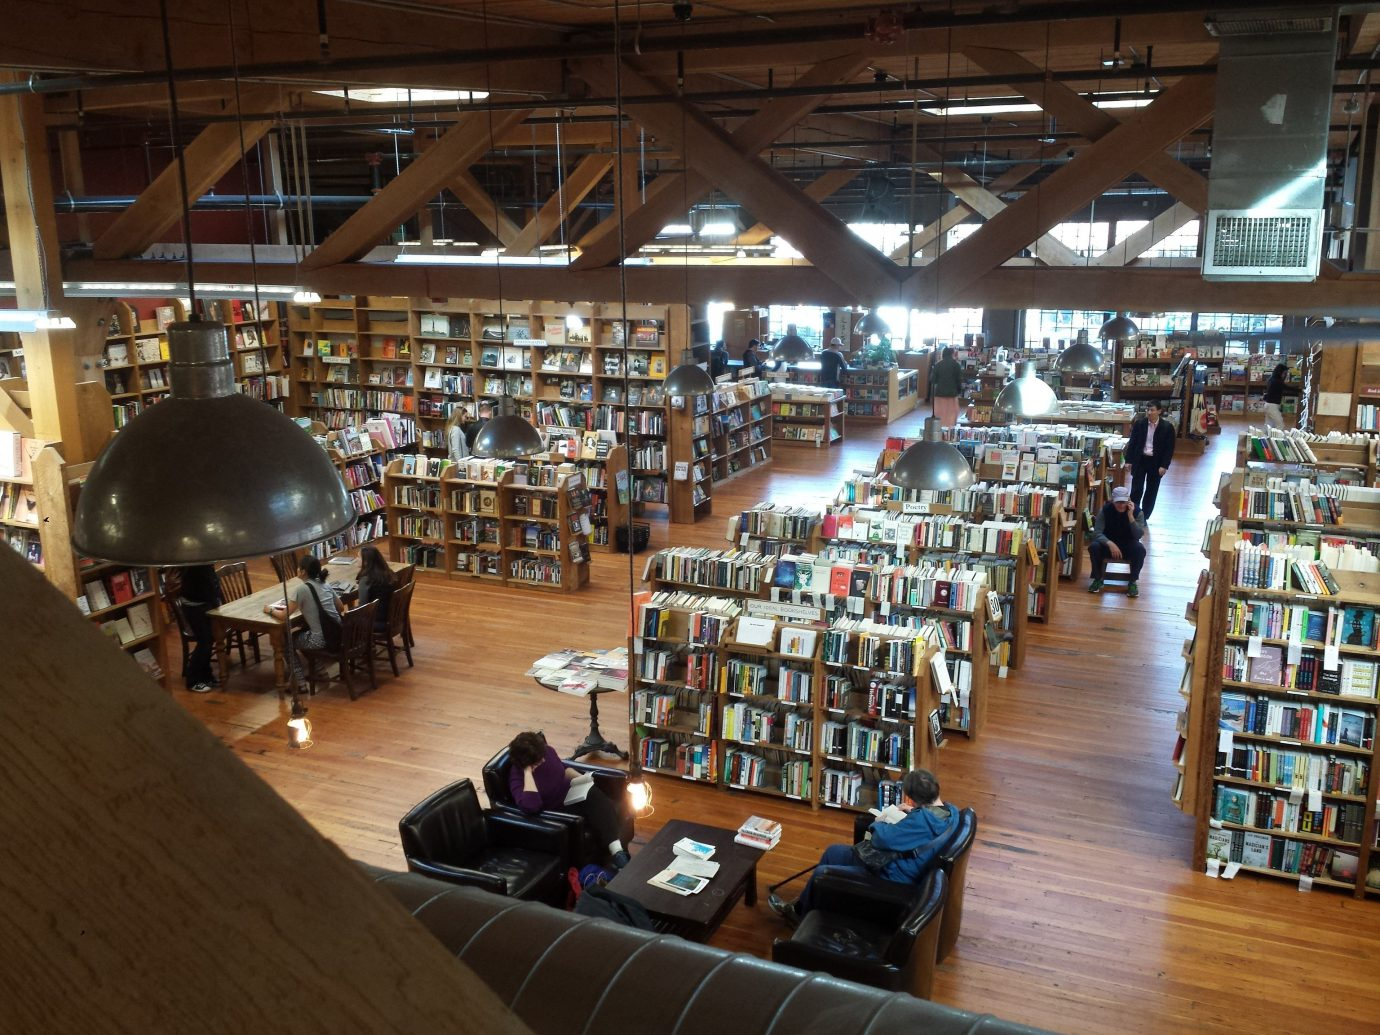 Offbeat Trip Ideas indoor library ceiling scene room building bookselling lots retail shelf furniture several